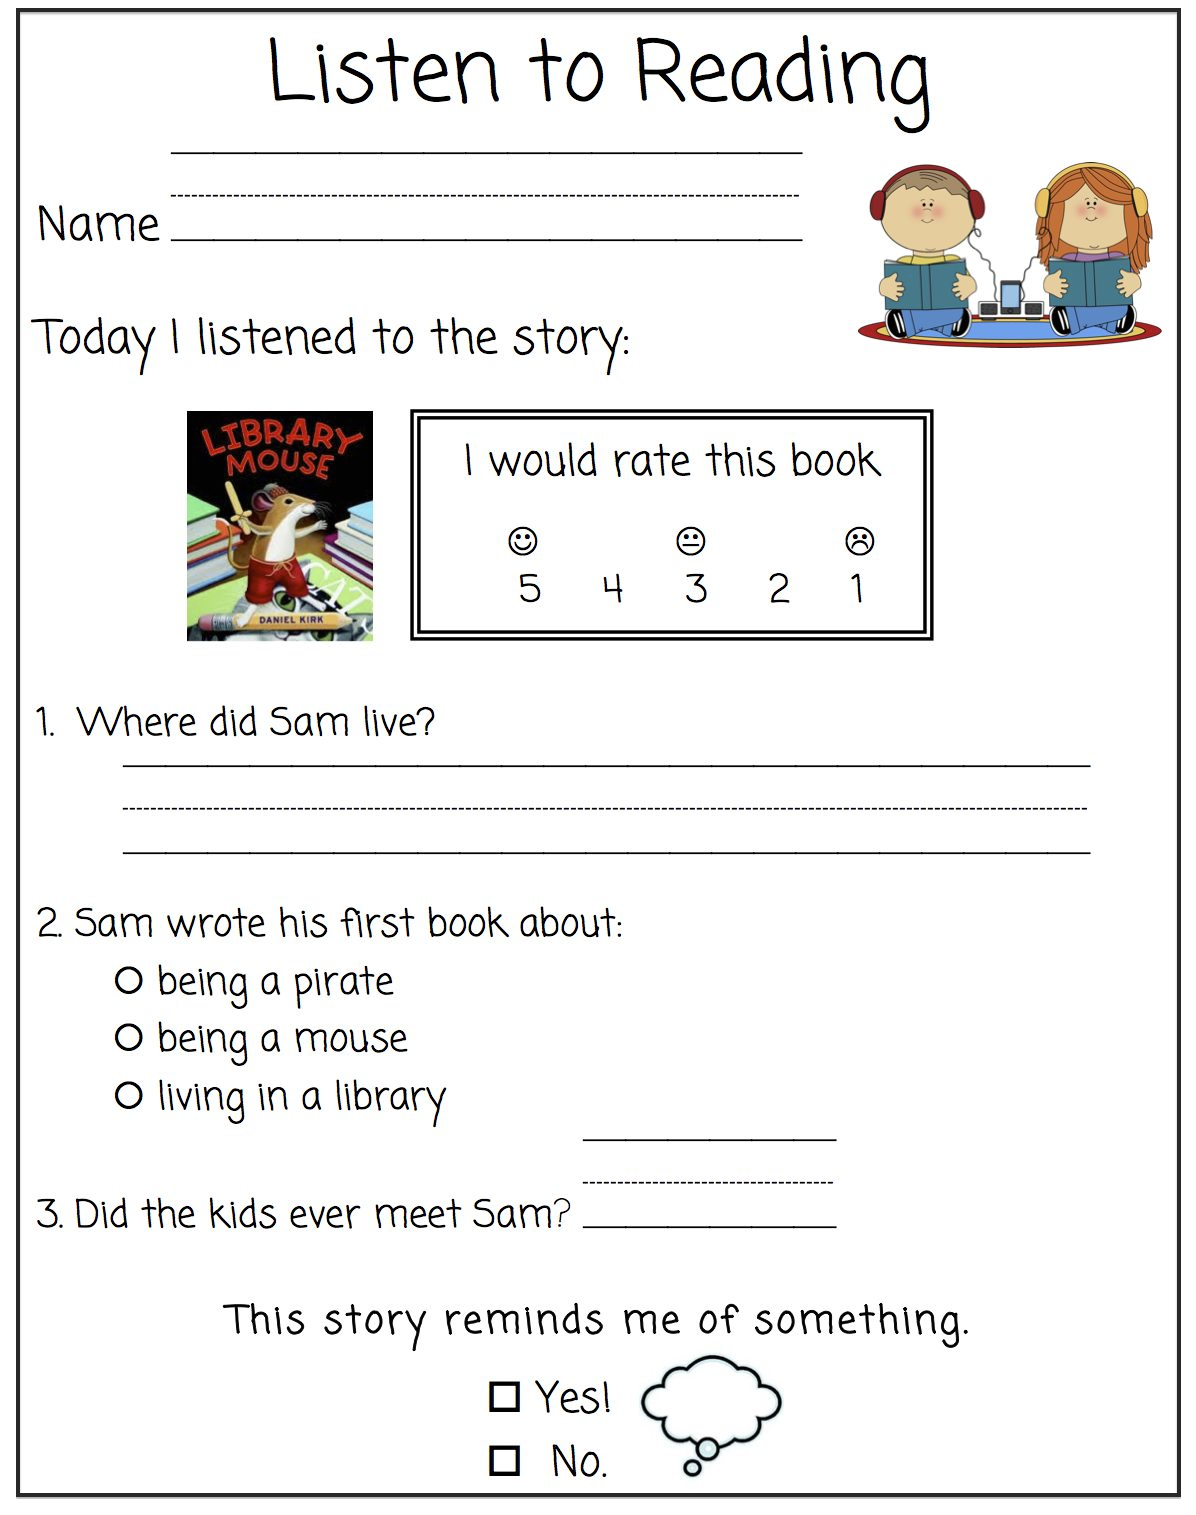 Worksheets Listening Comprehension Worksheets the first grade bloom worksheet for listening comprehension in addition to assessing their i wanted include 2 reading strategies evaluating making connections